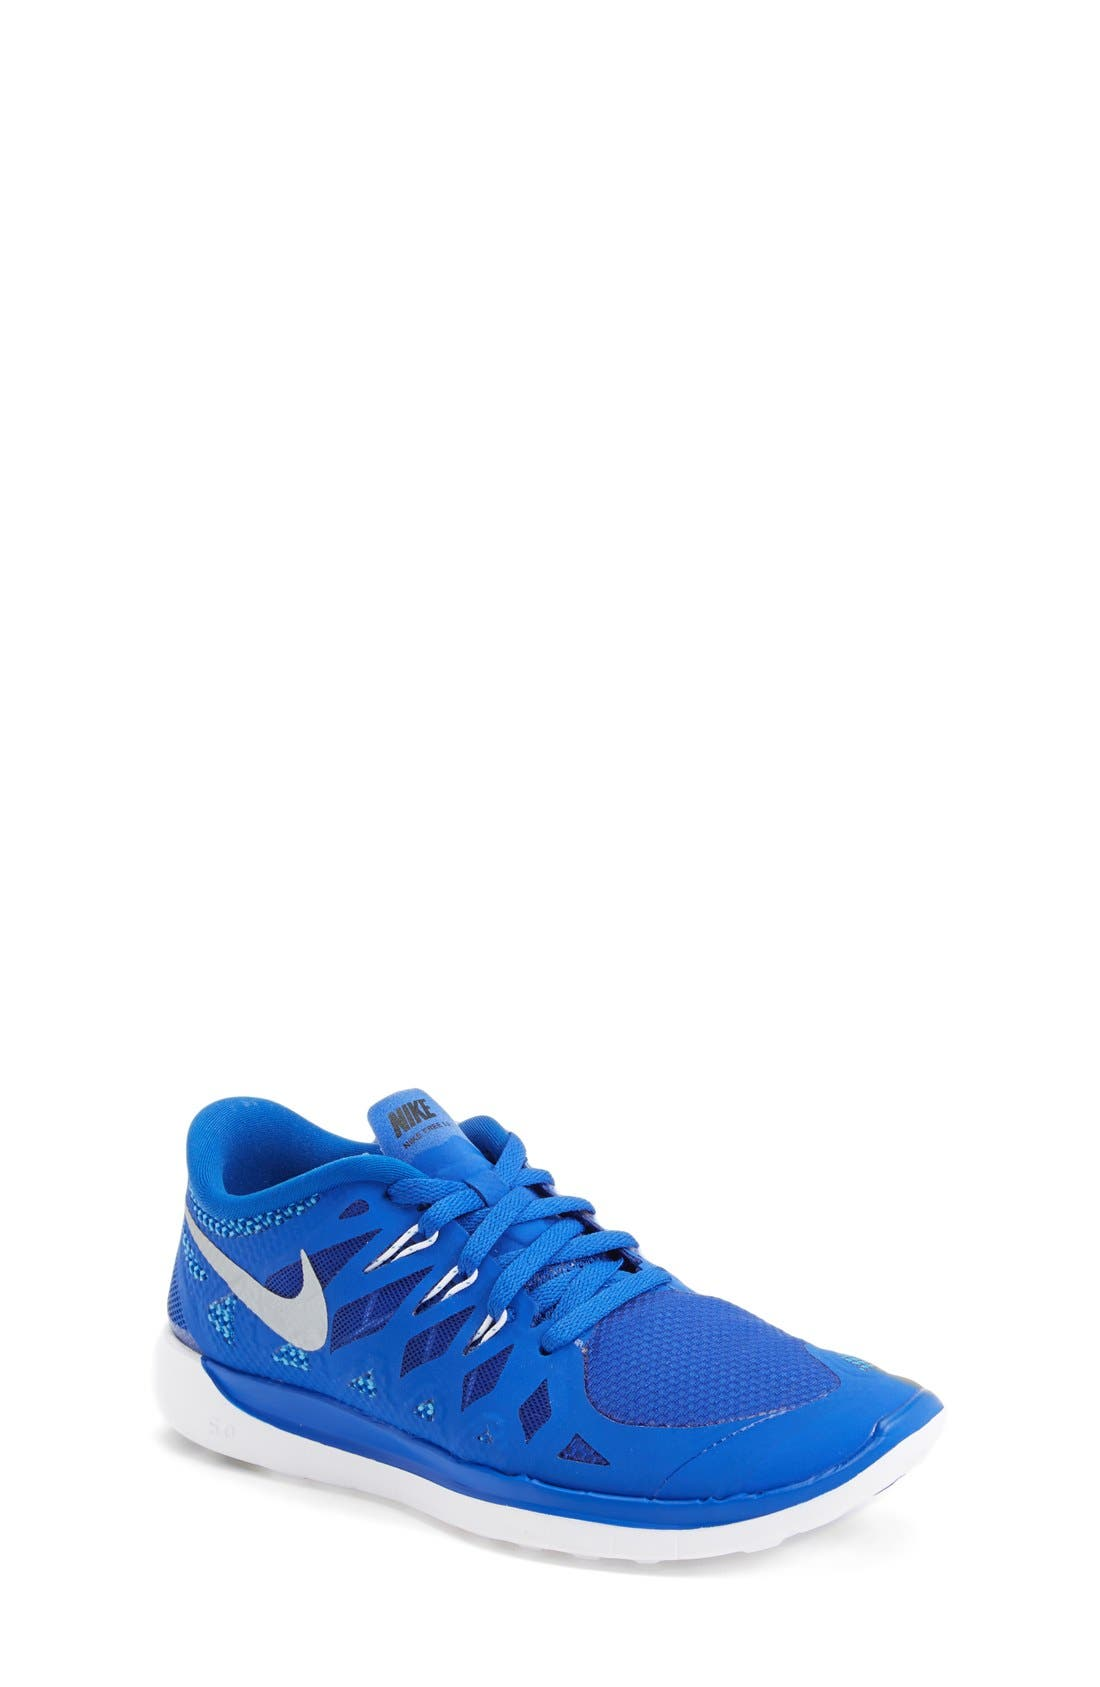 6559ae702ace nike free 5.0 kids running shoe on sale   OFF47% Discounts